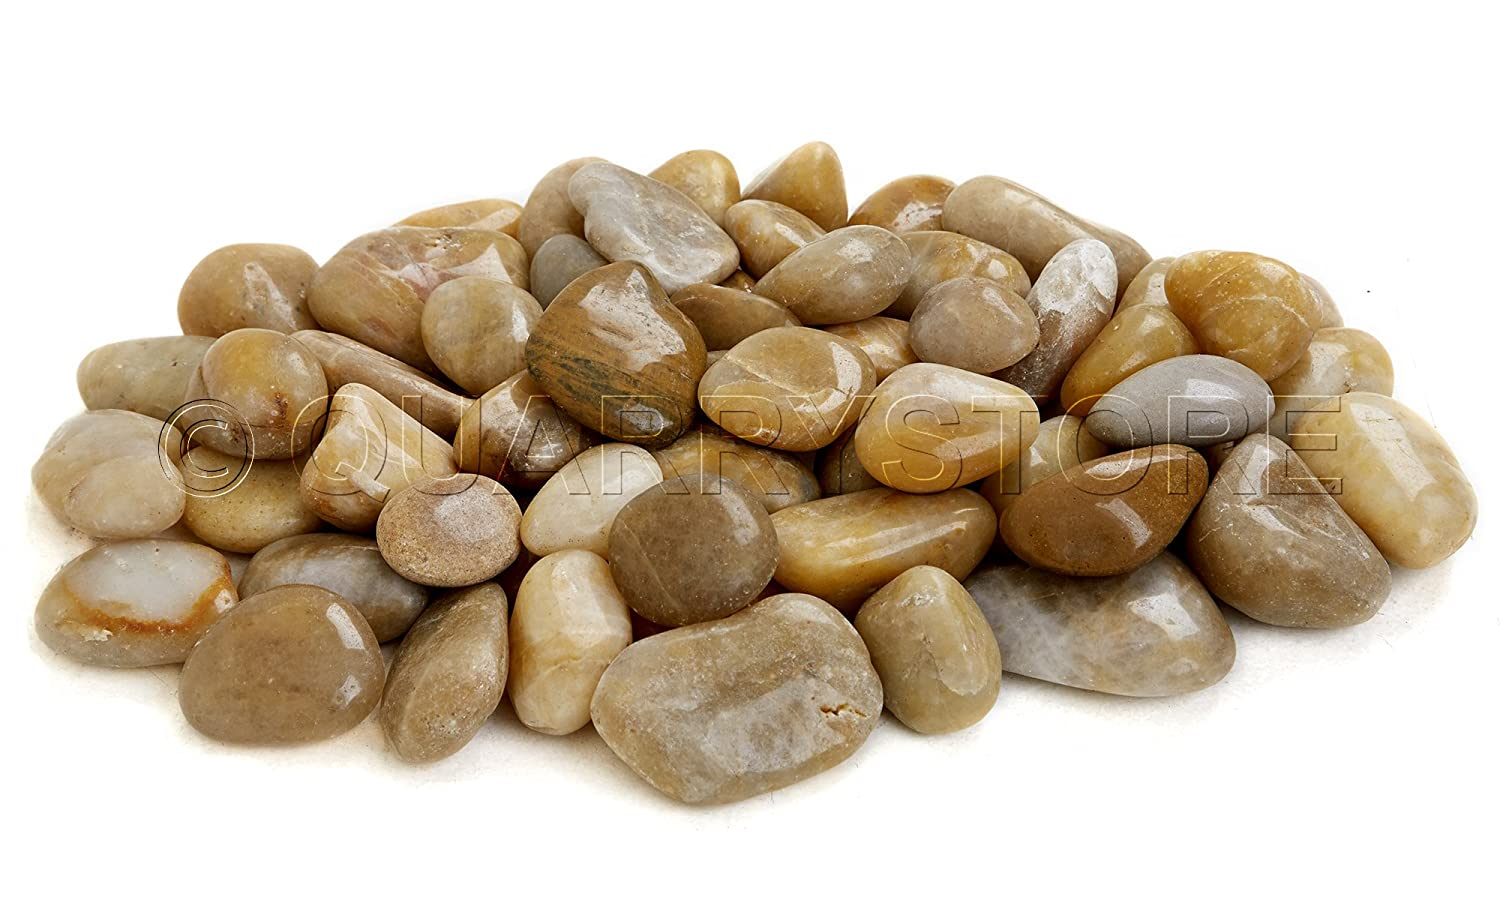 Quarrystore Natural Yellow Polished Decorative Garden Pebbles - Approximately 40mm to 60mm in Size - Ideal Outside Decorative Stones for Plant Toppers or Features or for use for Bathroom or Kitchens - 1kg Bag